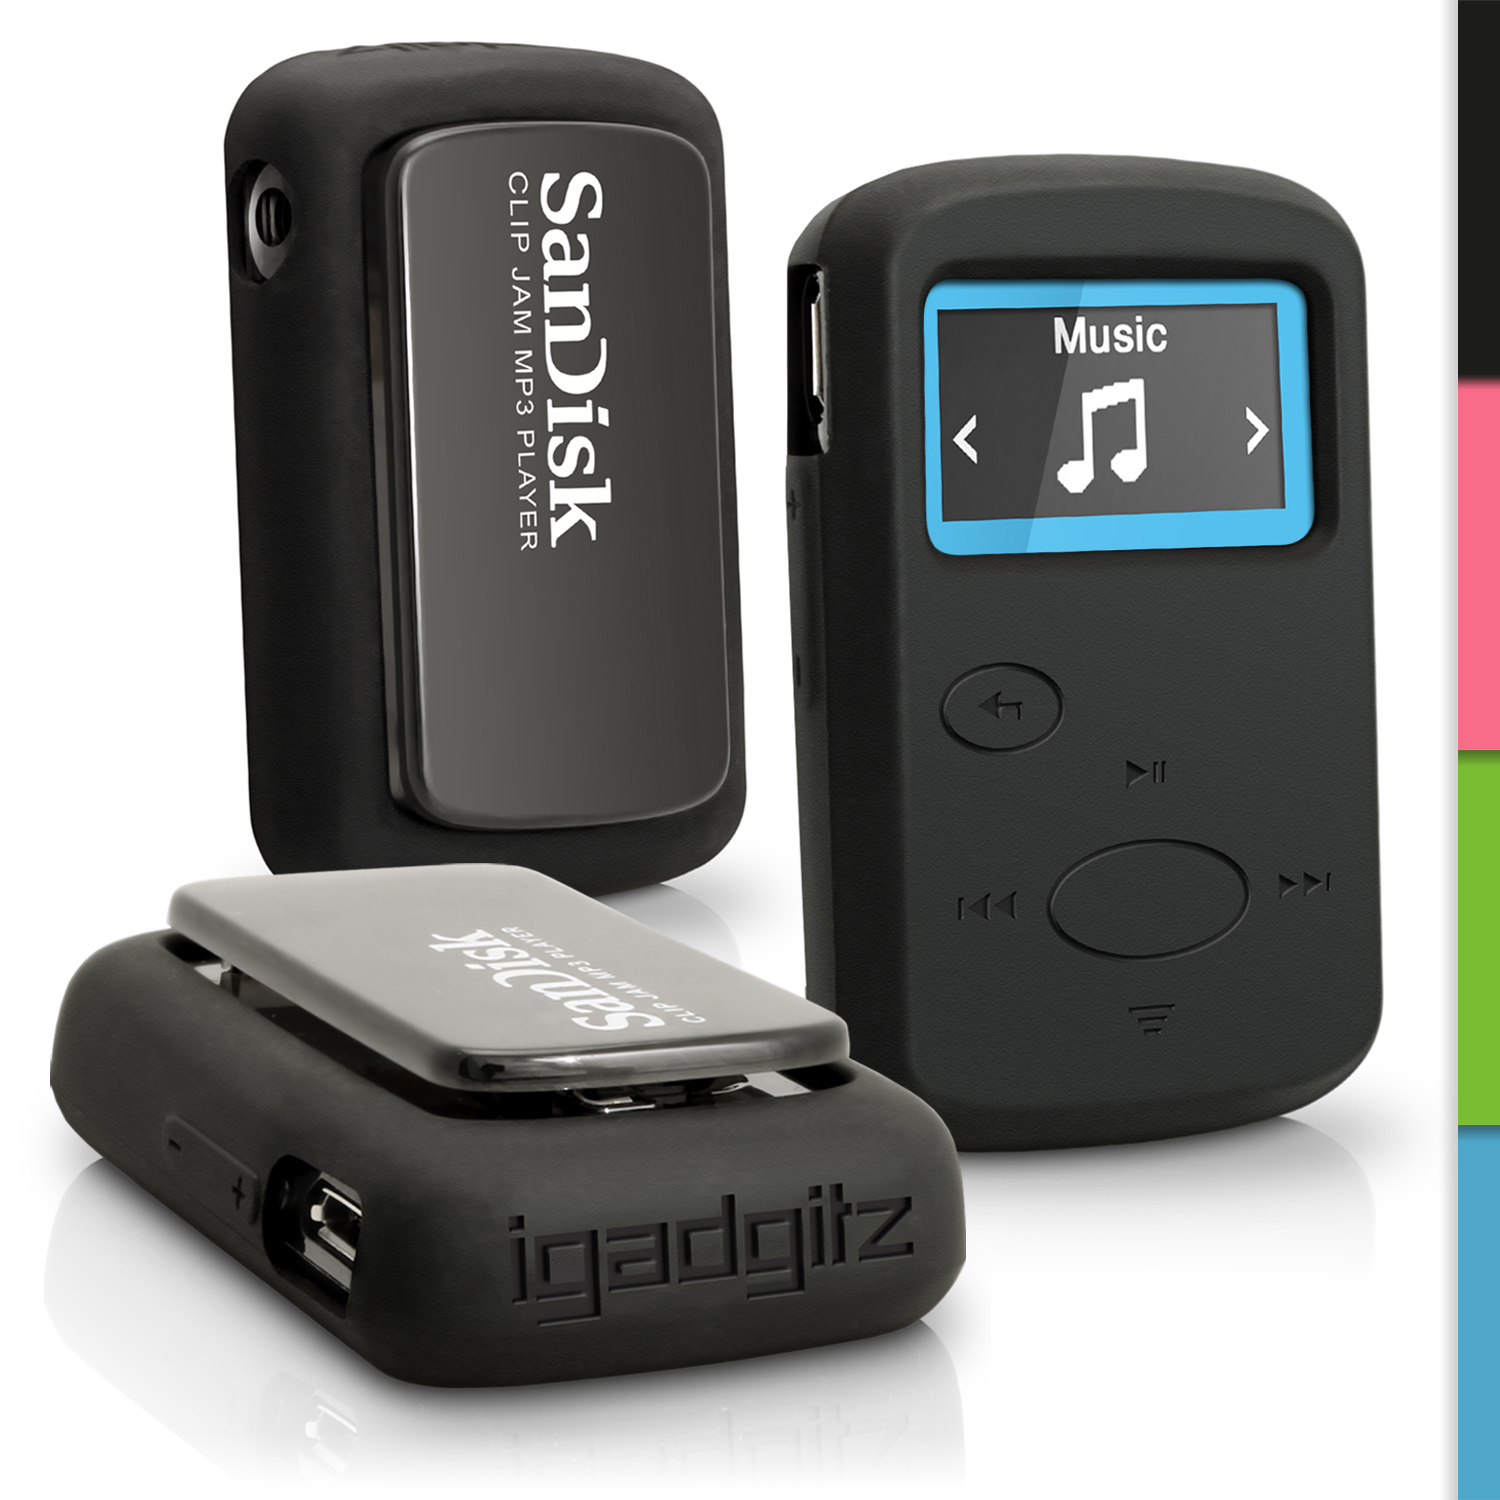 iGadgitz Black Silicone Skin Case for Sandisk Sansa Clip Jam MP3 Player 8GB SDMX26-008G (2015) Gel Rubber Cover